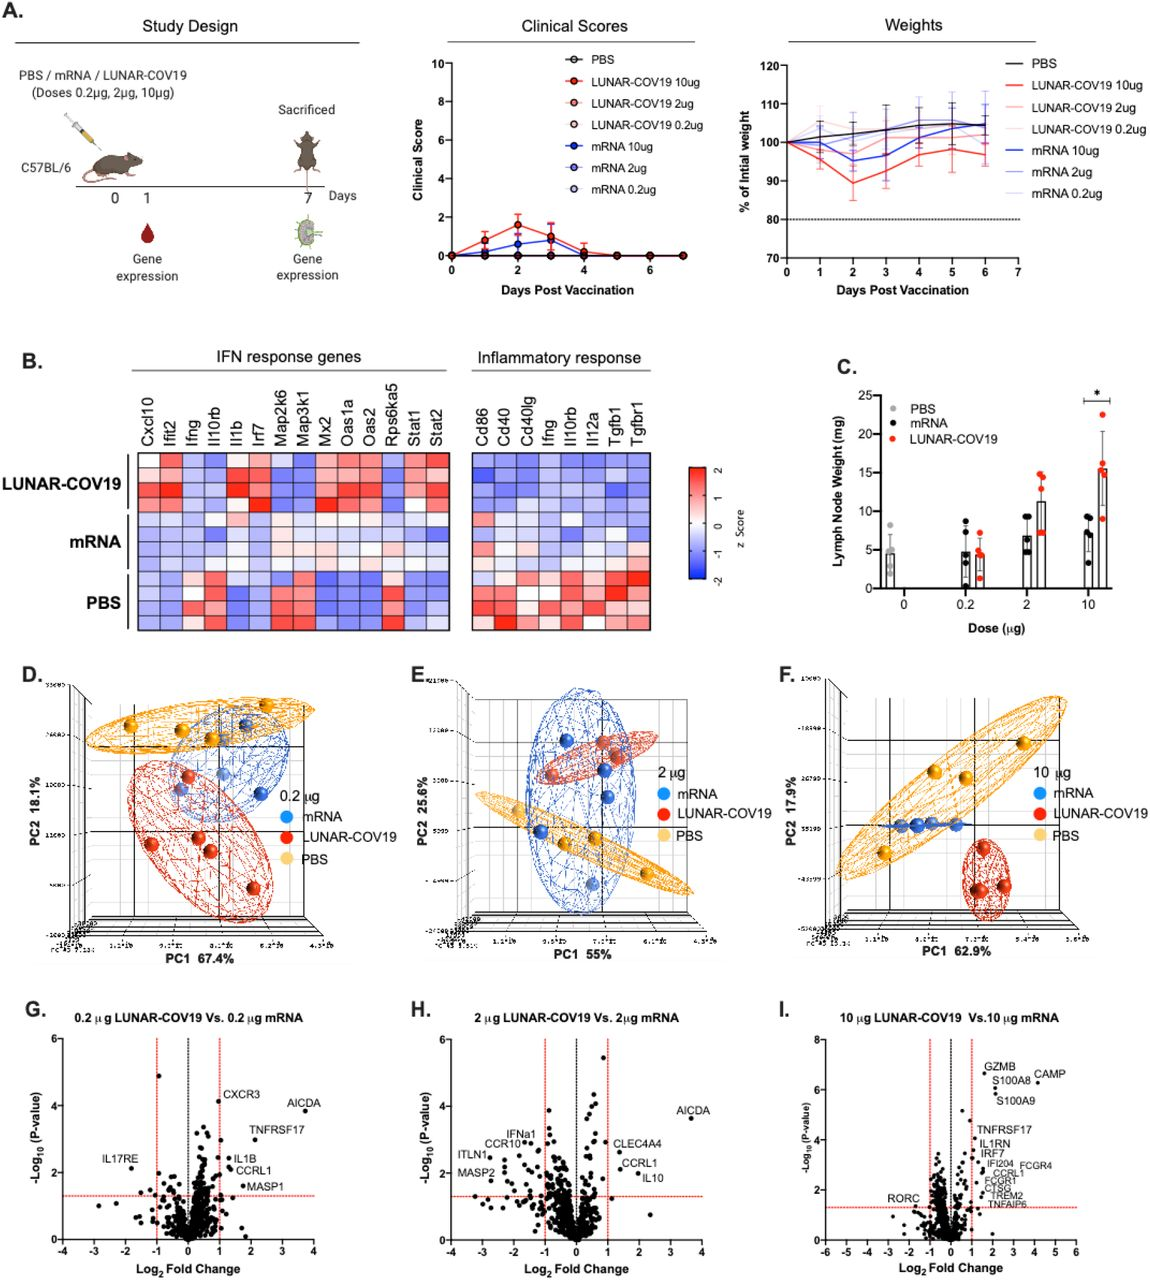 Clinical Scores, mouse weights and transcriptomic analysis of immune genes following vaccination with LUNAR-COV19 or conventional mRNA SARS-CoV-2 vaccine candidates. A) C57BL/6 mice ( n =5/group) were immunized with either PBS, mRNA or LUNAR-COV19 (doses 0.2 μg, 2 μg or 10 μg), weight and clinical scores assessed every day, bled at day 1 post-immunization, sacrificed at 7 days post-vaccination and lymph nodes harvested. Gene expression of inflammatory genes and immune genes were measured in whole blood (at day 1) and lymph nodes (at day 7), respectively. B ) Expression of IFN and inflammatory response genes in whole blood presented as heatmap of z scores. C) Lymph node weights at 7 days post-vaccination. Principal component analysis (PCA) of immune gene expression following vaccination with conventional mRNA or LUNAR-COV19 at doses D) 0.2 μg, E) 2 μg and F) 10 μg. Volcano plots of fold change of LUNAR-COV19 versus conventional mRNA (x-axis) and Log 10 P -value of LUNAR-COV19 versus conventional mRNA (y-axis) for doses G) 0.2 μg, H) 2 μg and I) 10 μg. Study design schematic diagram created with BioRender.com. Weights of lymph nodes were compared between groups using a two-tailed Mann-Whitney U test with * denoting 0.05